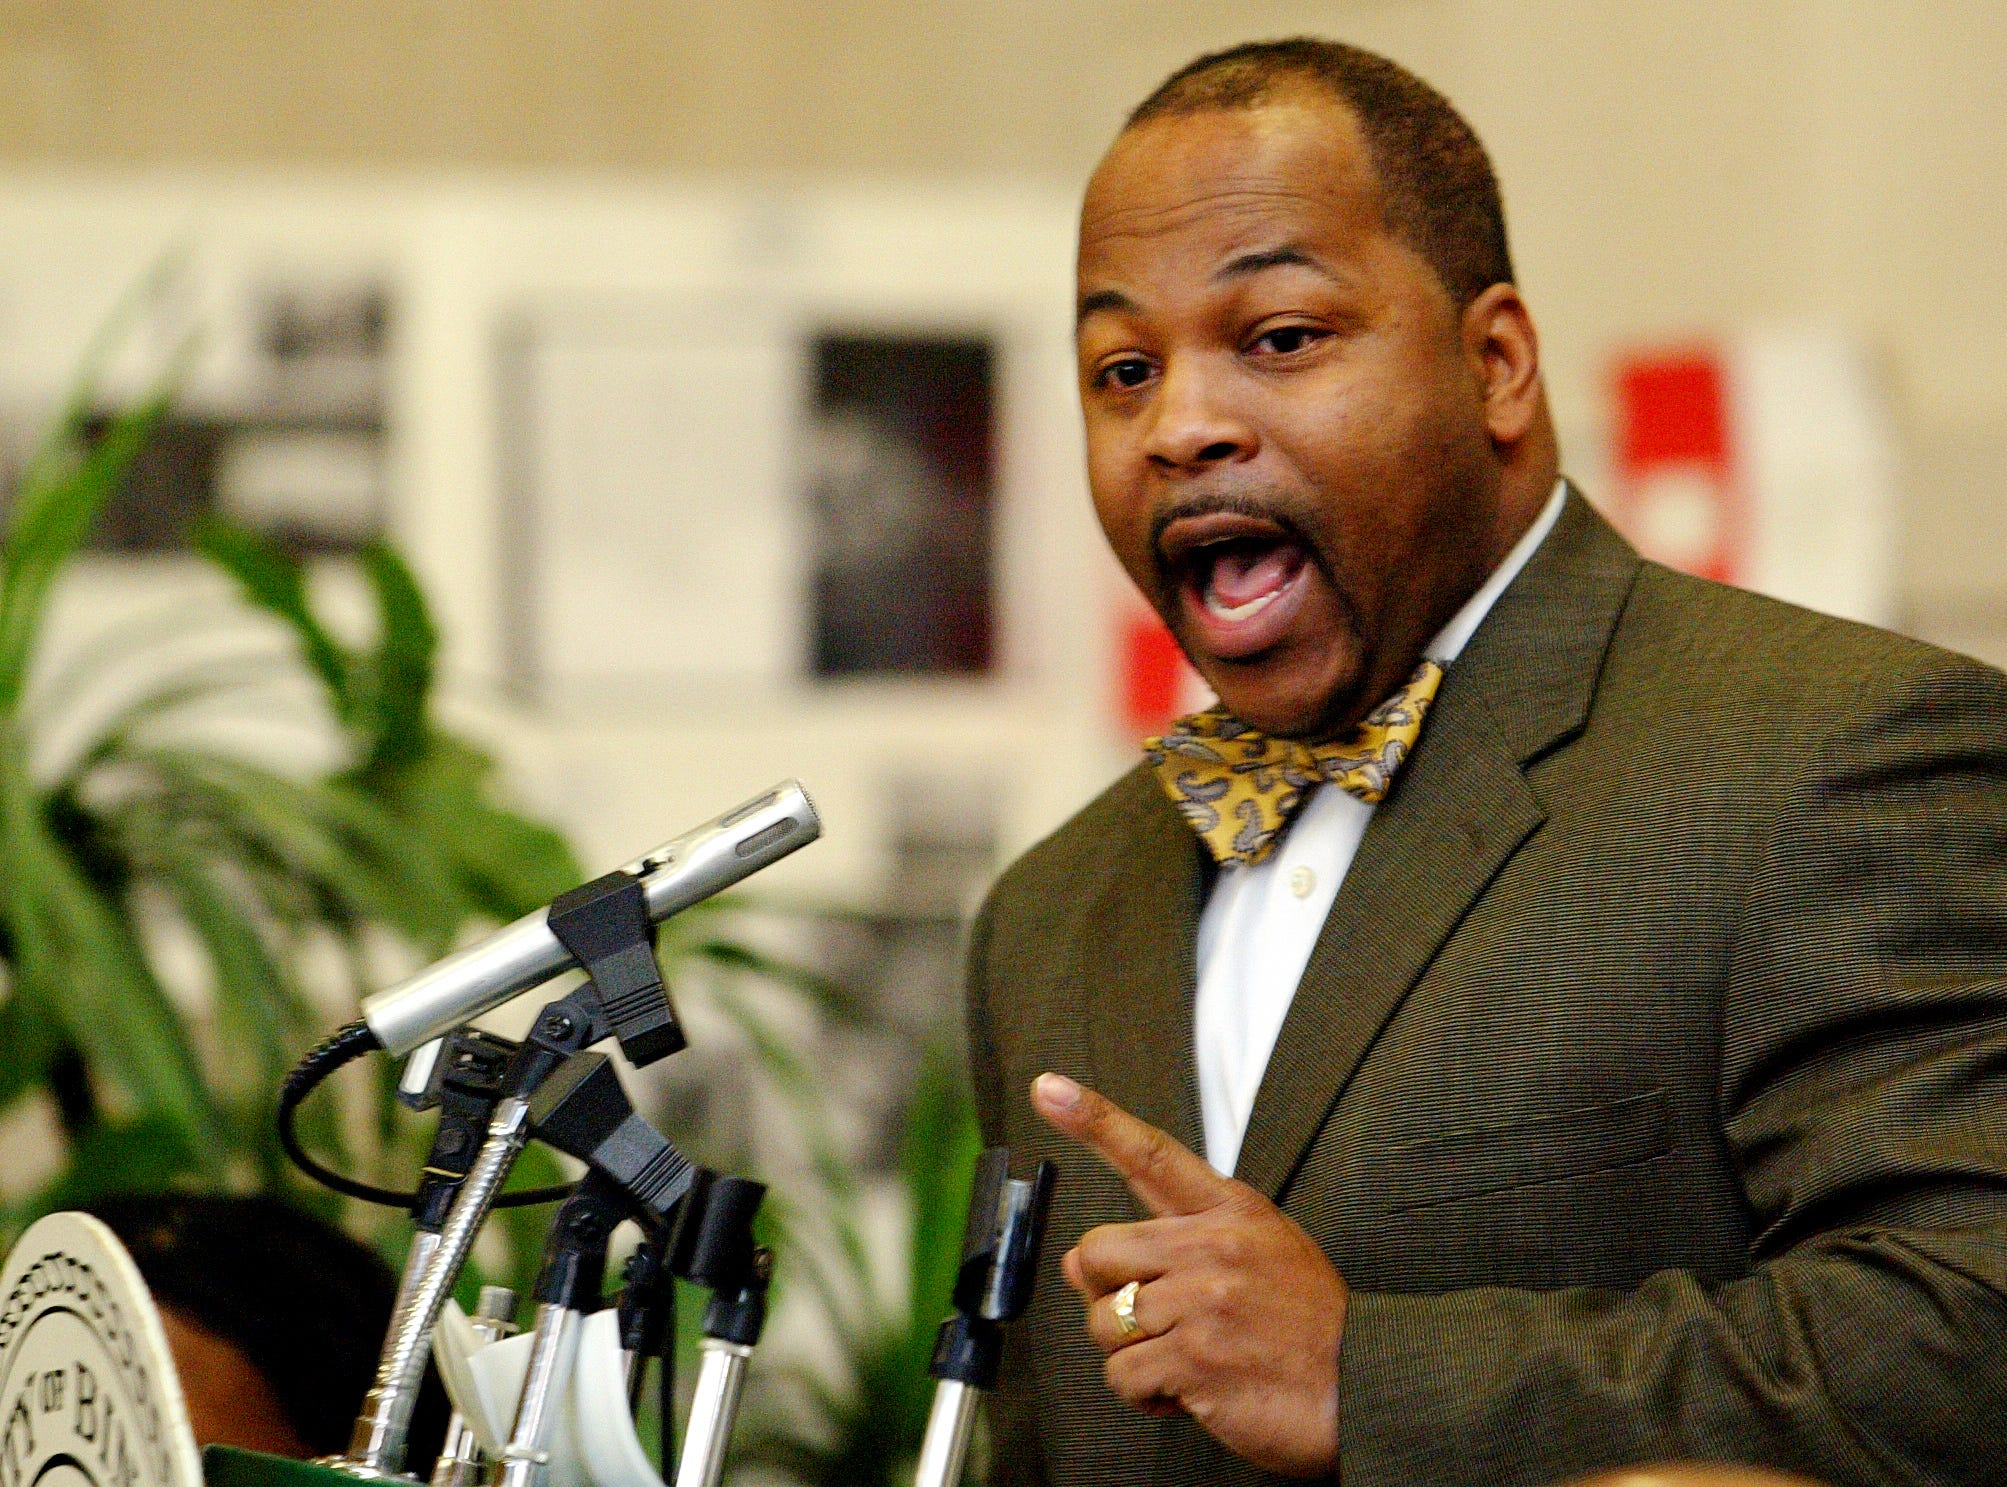 2006: Keynote Speaker, Reverend Gregory Johnson of The Beautiful Plain Baptist Church, Binghamton talks Monday about Dr. Martin Luther King Jr. during a celebrating of his life at the Plaza Gallery, City Hall, Binghamton.